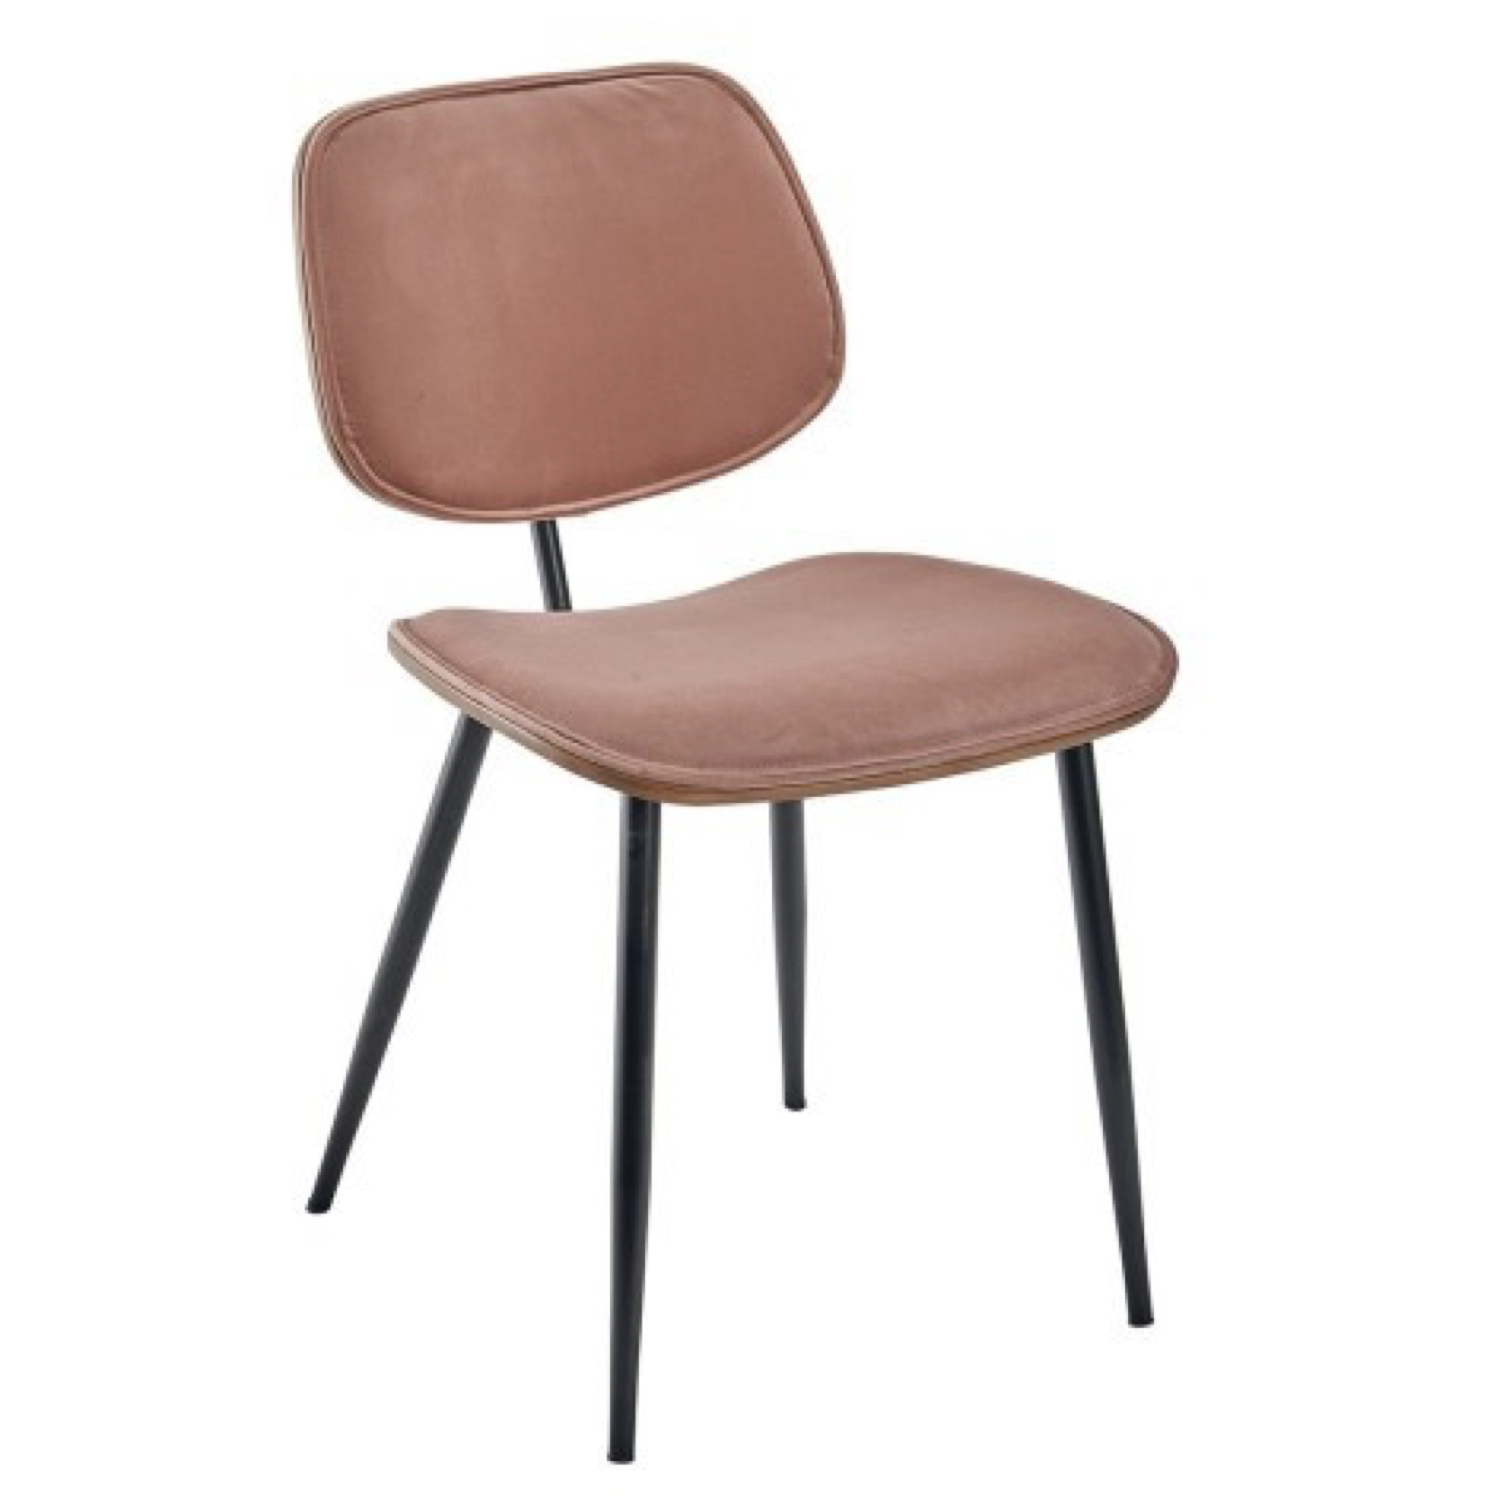 ou trouver chaise velours rose 2